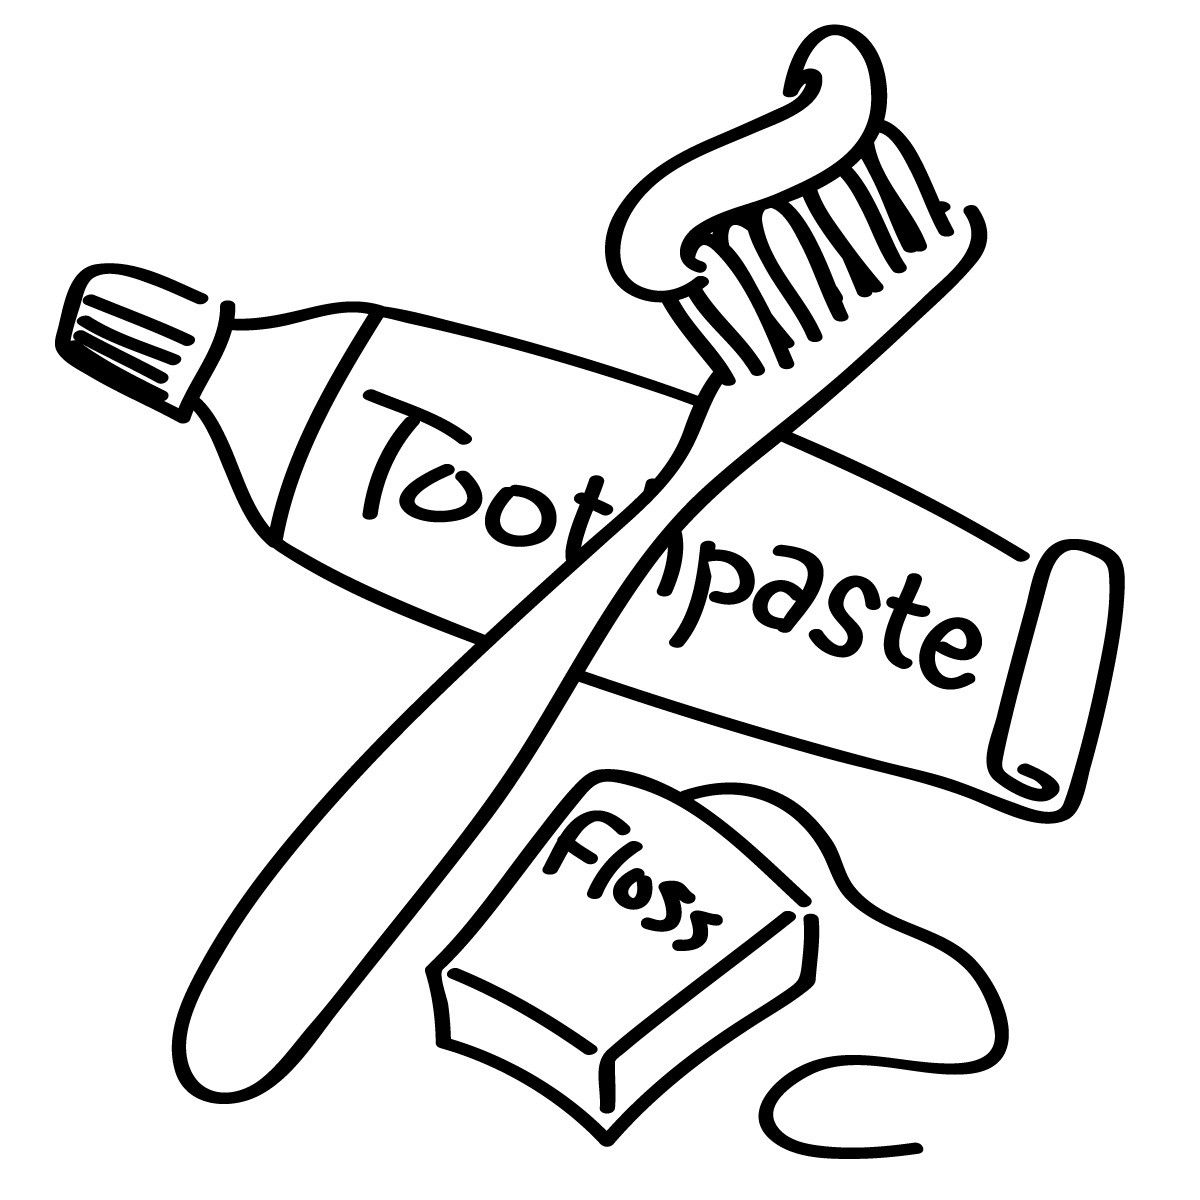 Dental Hygiene Coloring Pages For Kids | Resume Samples | Pinterest ...